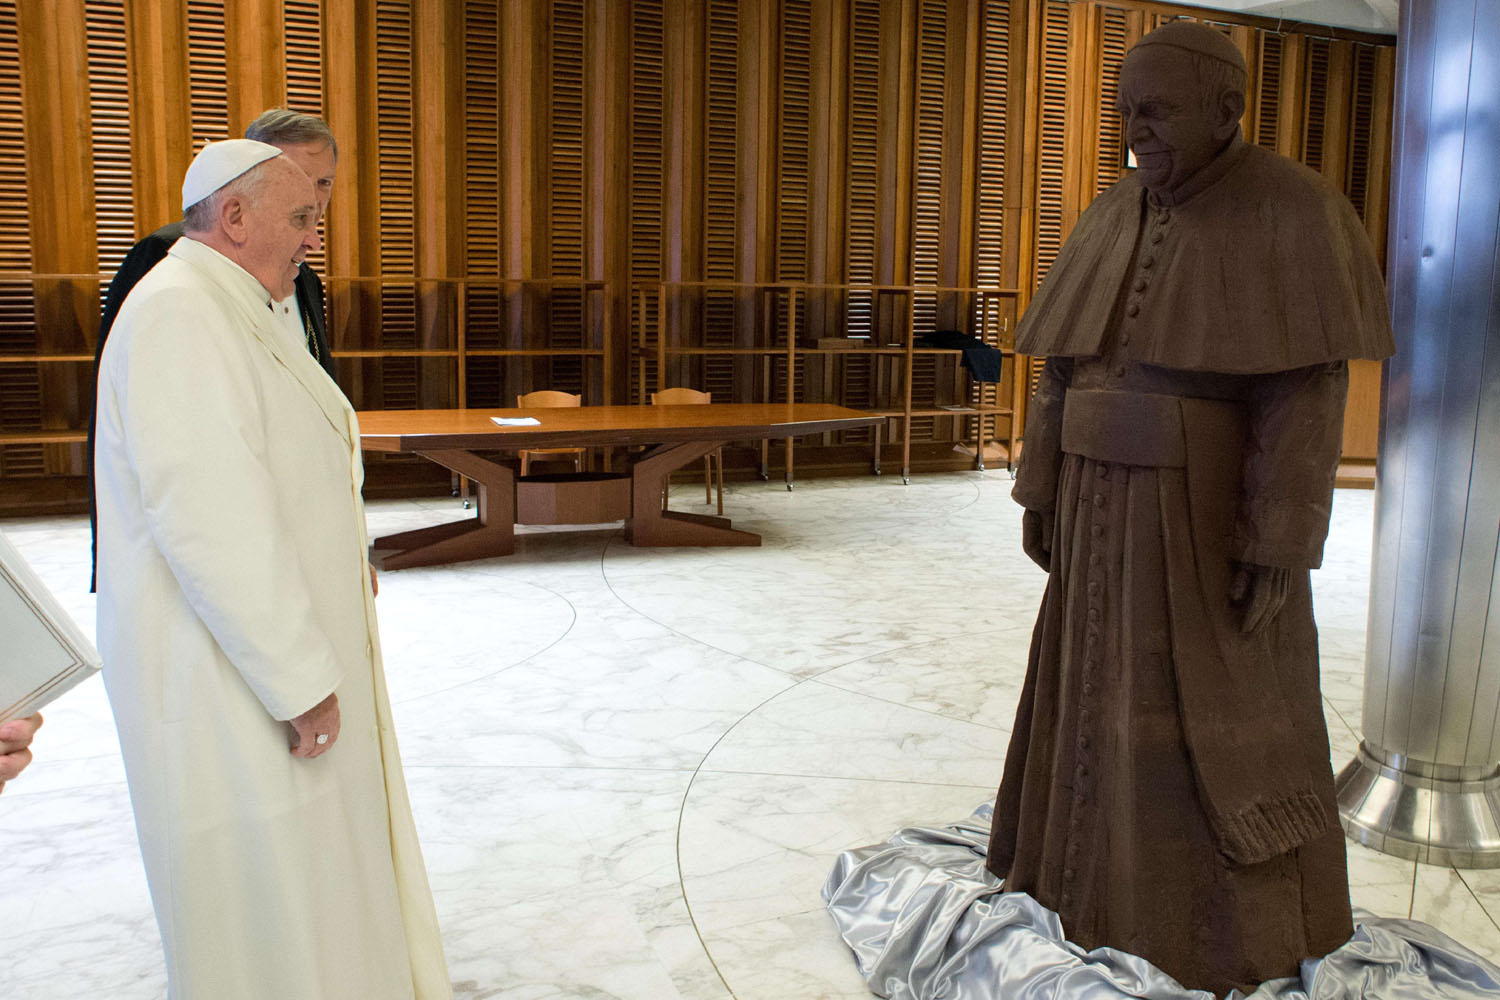 Pope Francis looks at a chocolate statue of himself, given to him after his weekly audience, on Feb. 5, 2014.